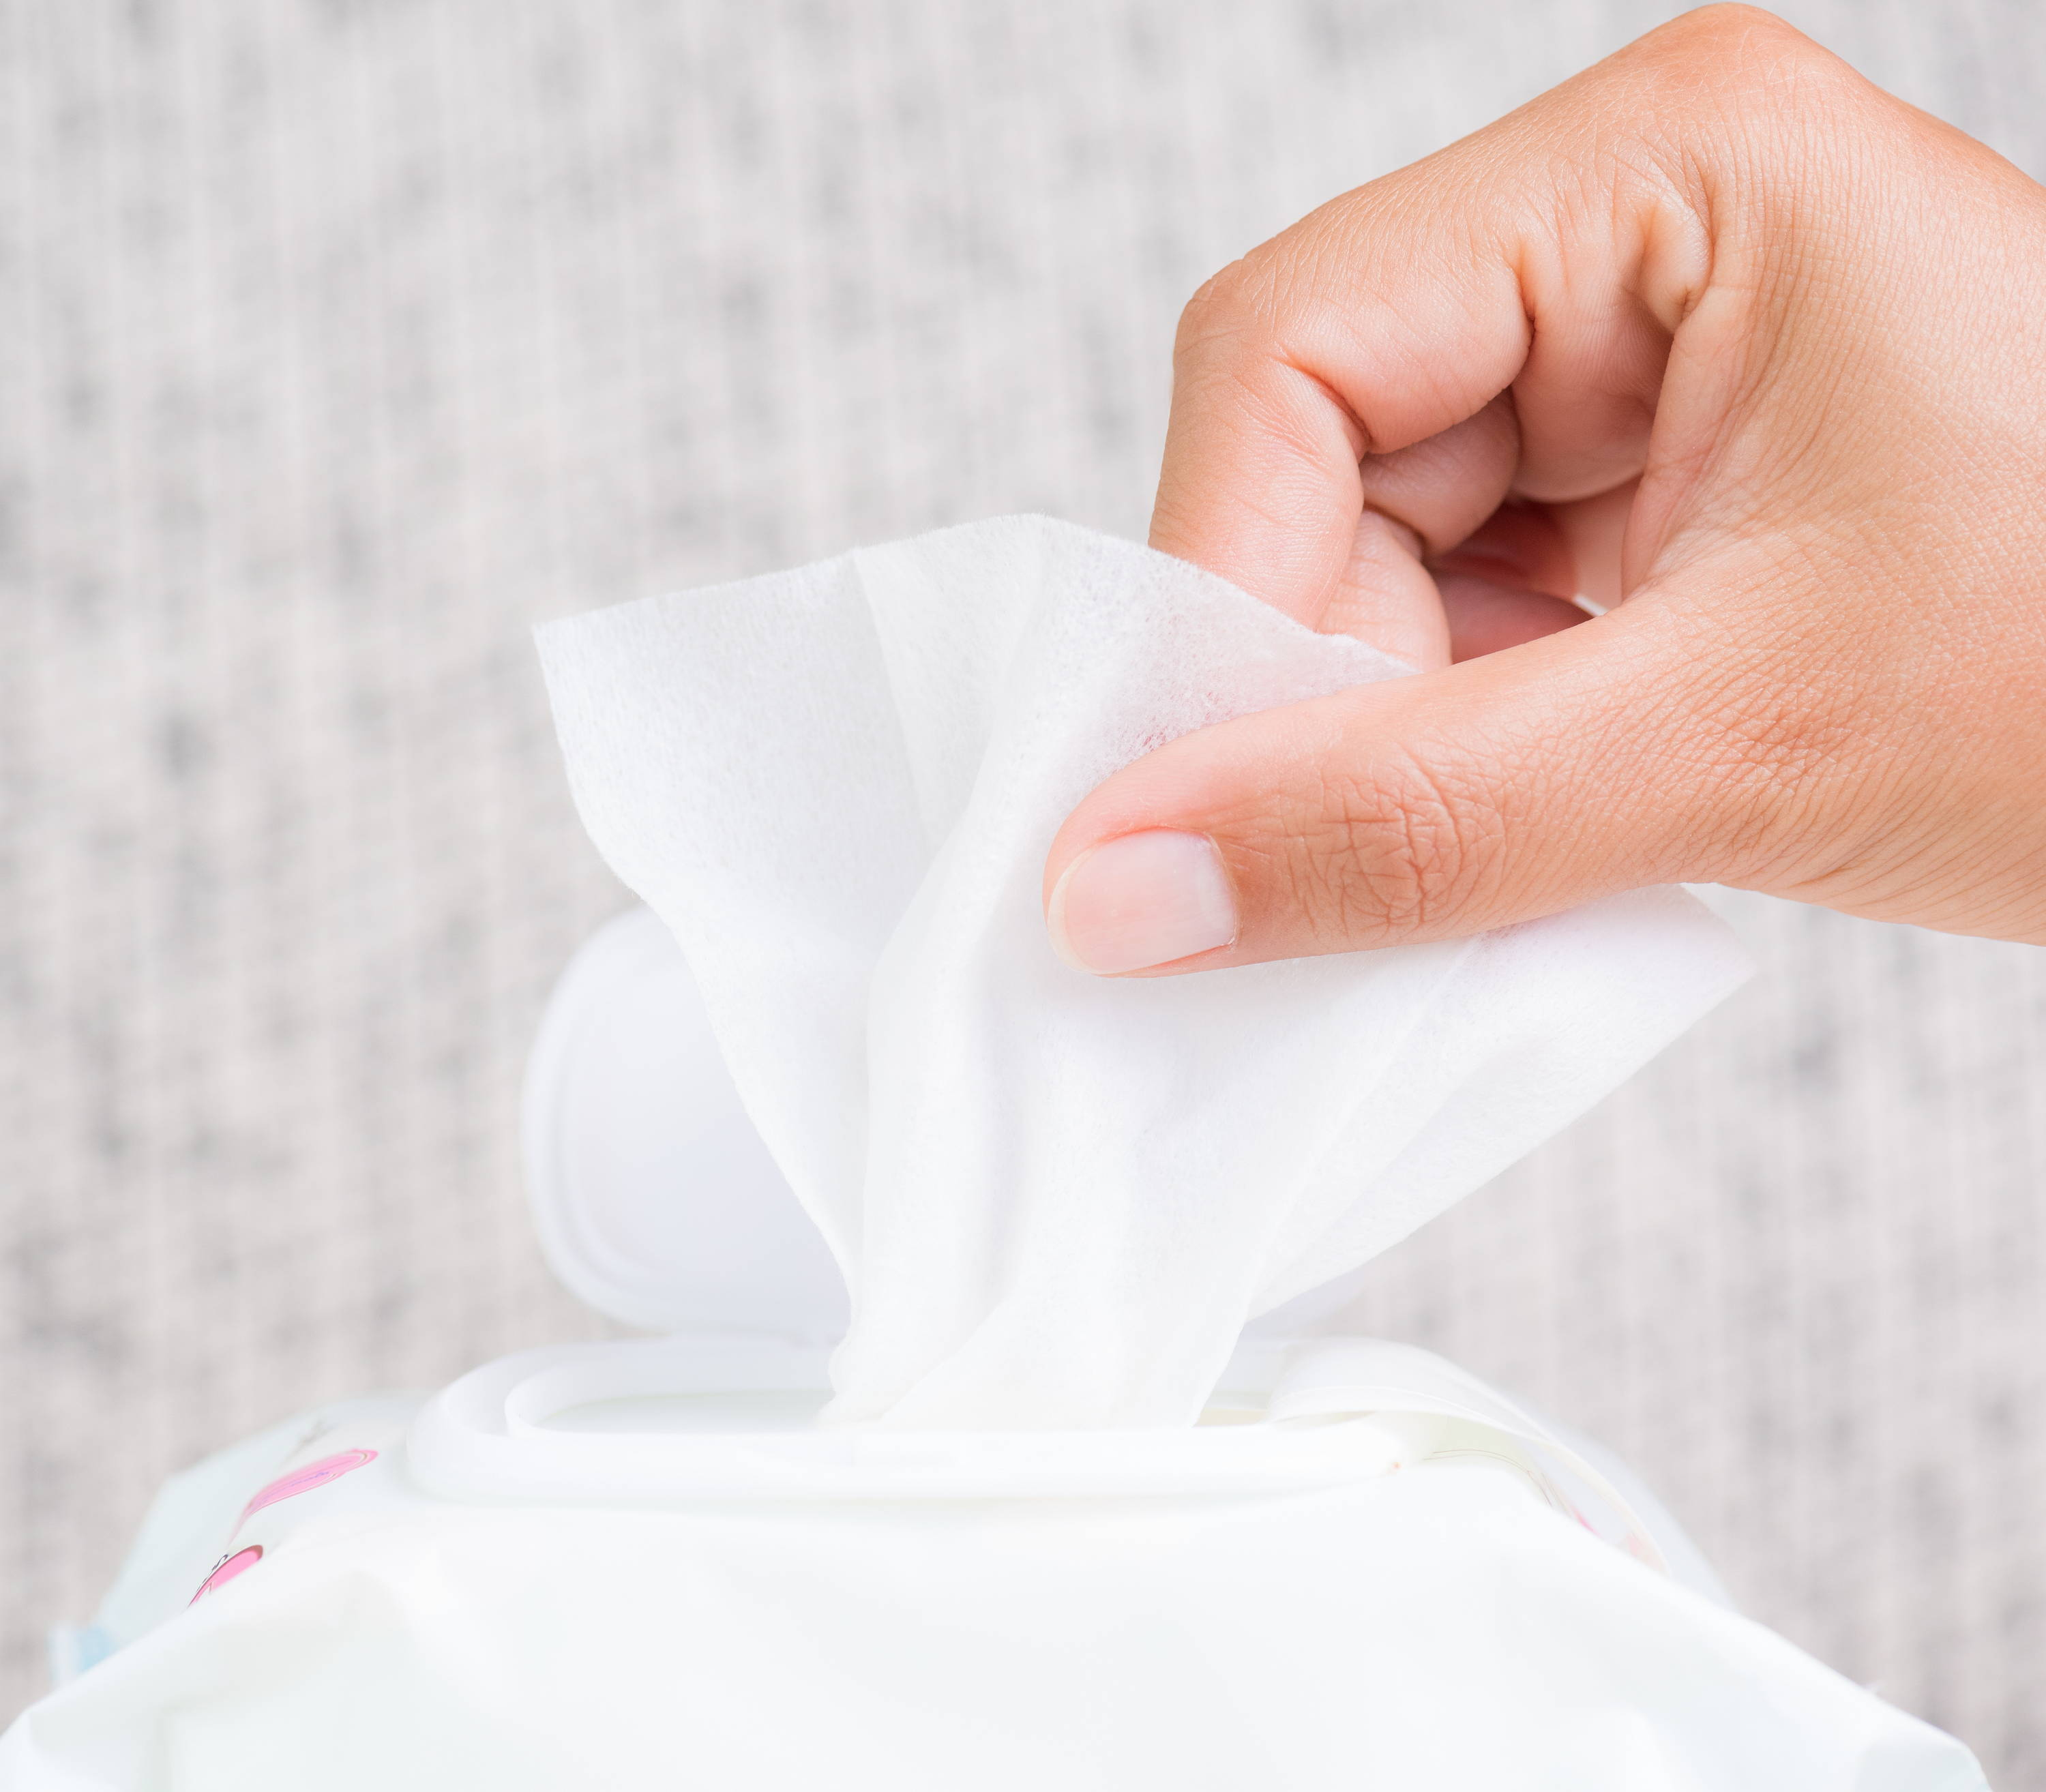 Hand grabbing a disposable wipes